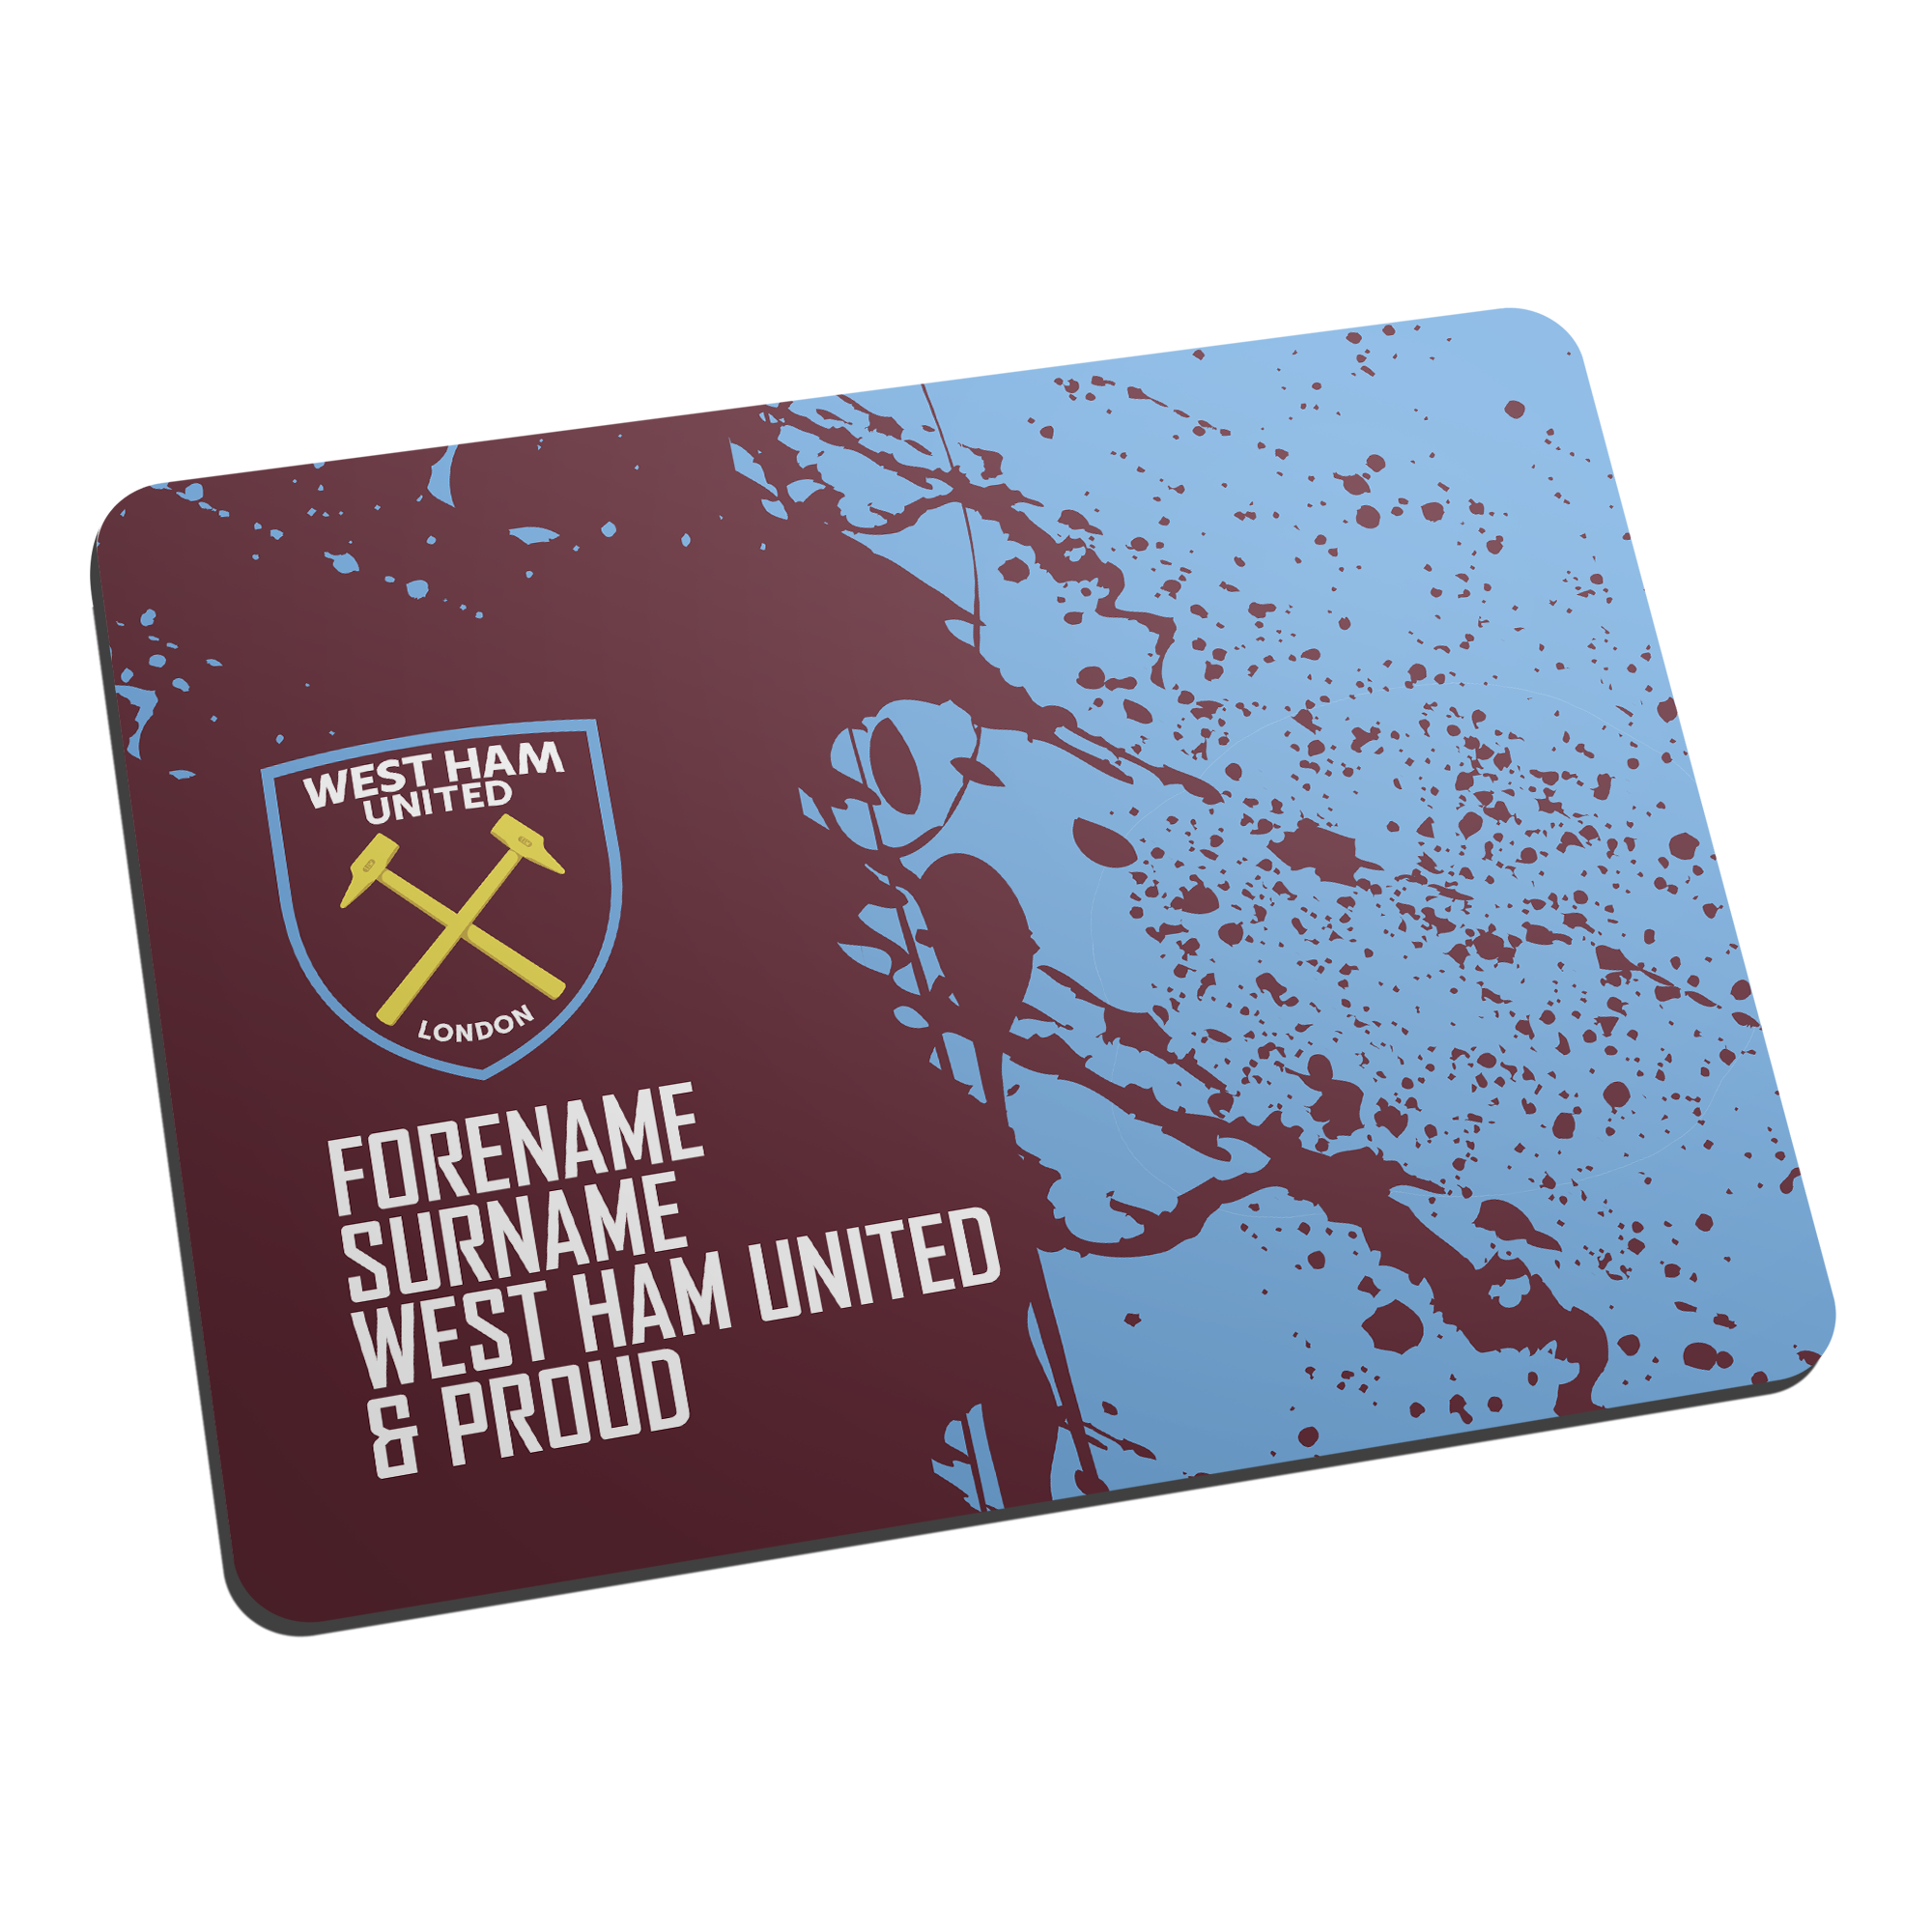 West Ham United FC Proud Mouse Mat